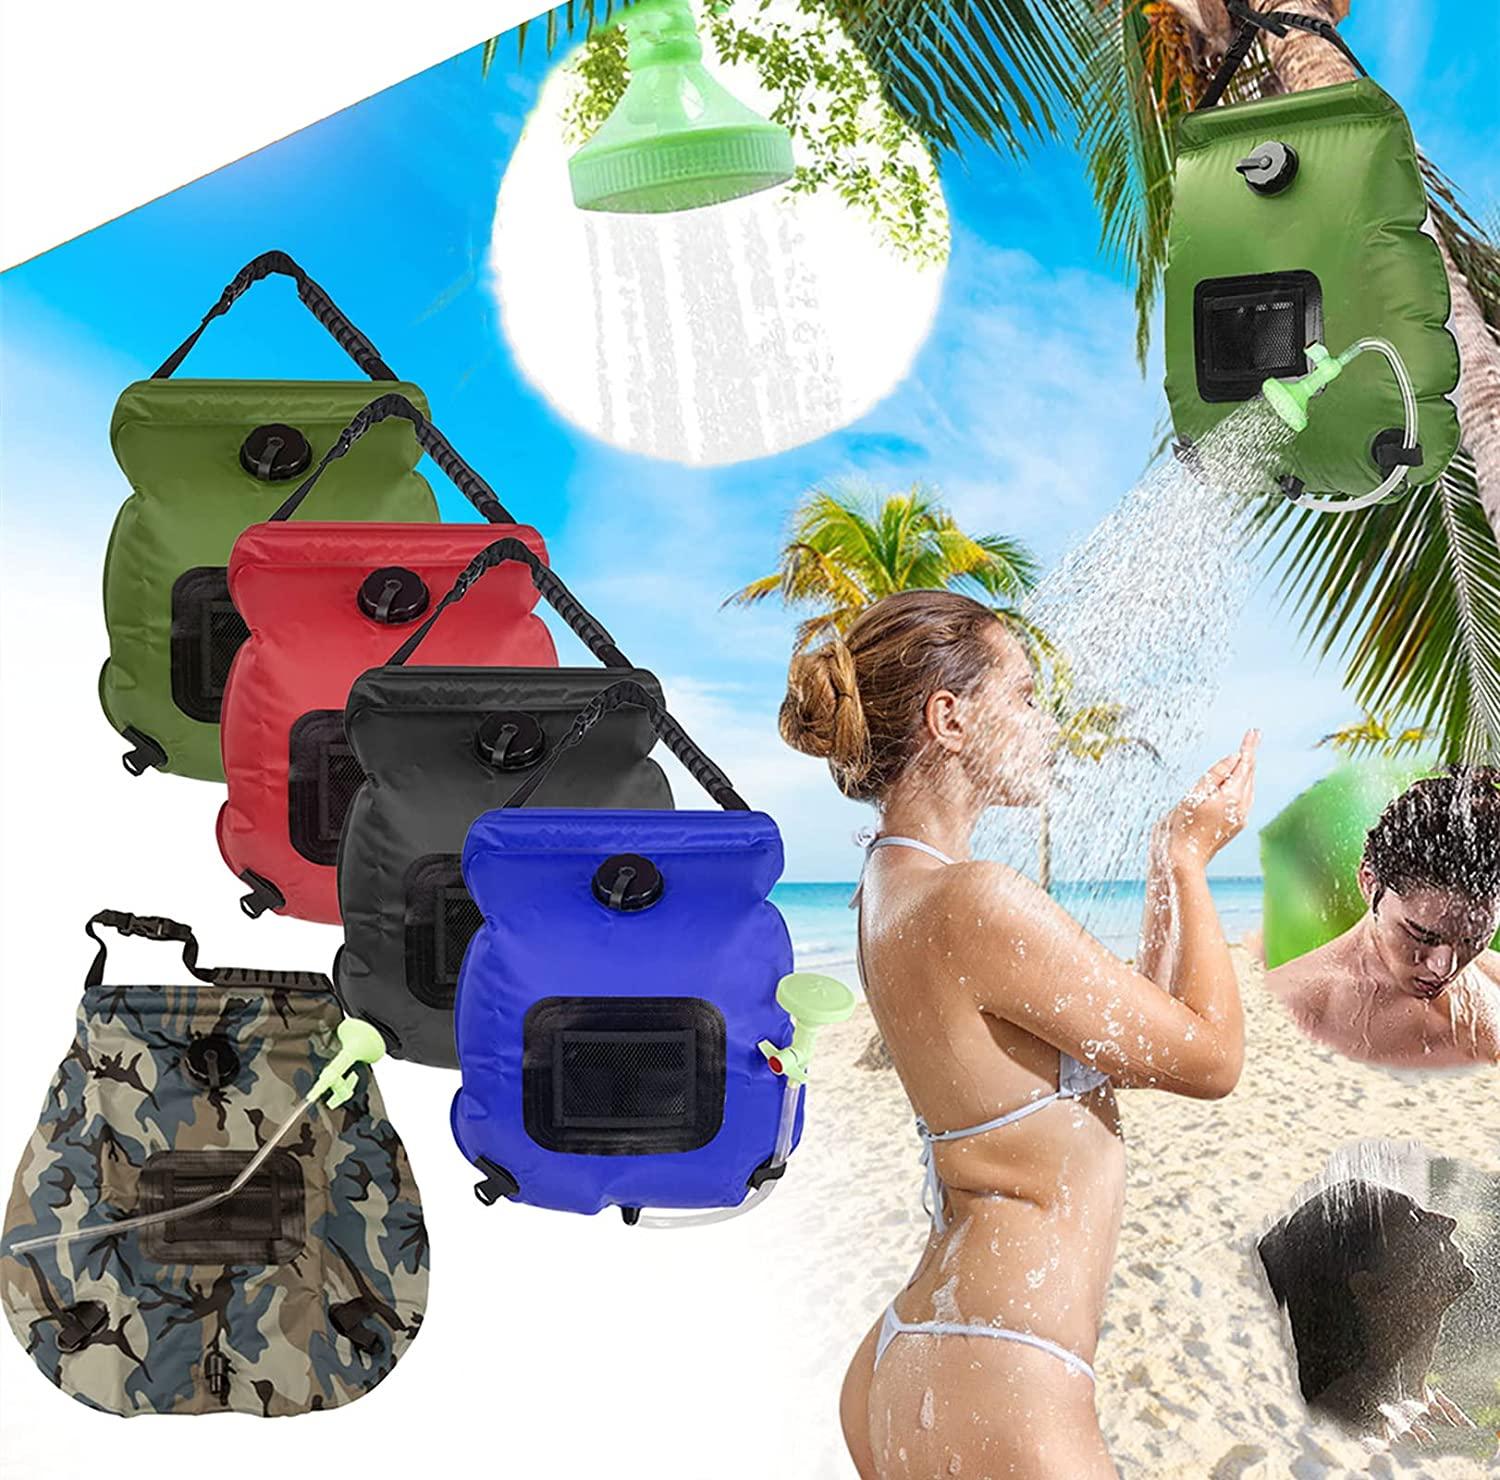 MTTP Camping Shower Max 44% OFF Bag 20L Outdoor Inflatable Hot Solar Long Beach Mall